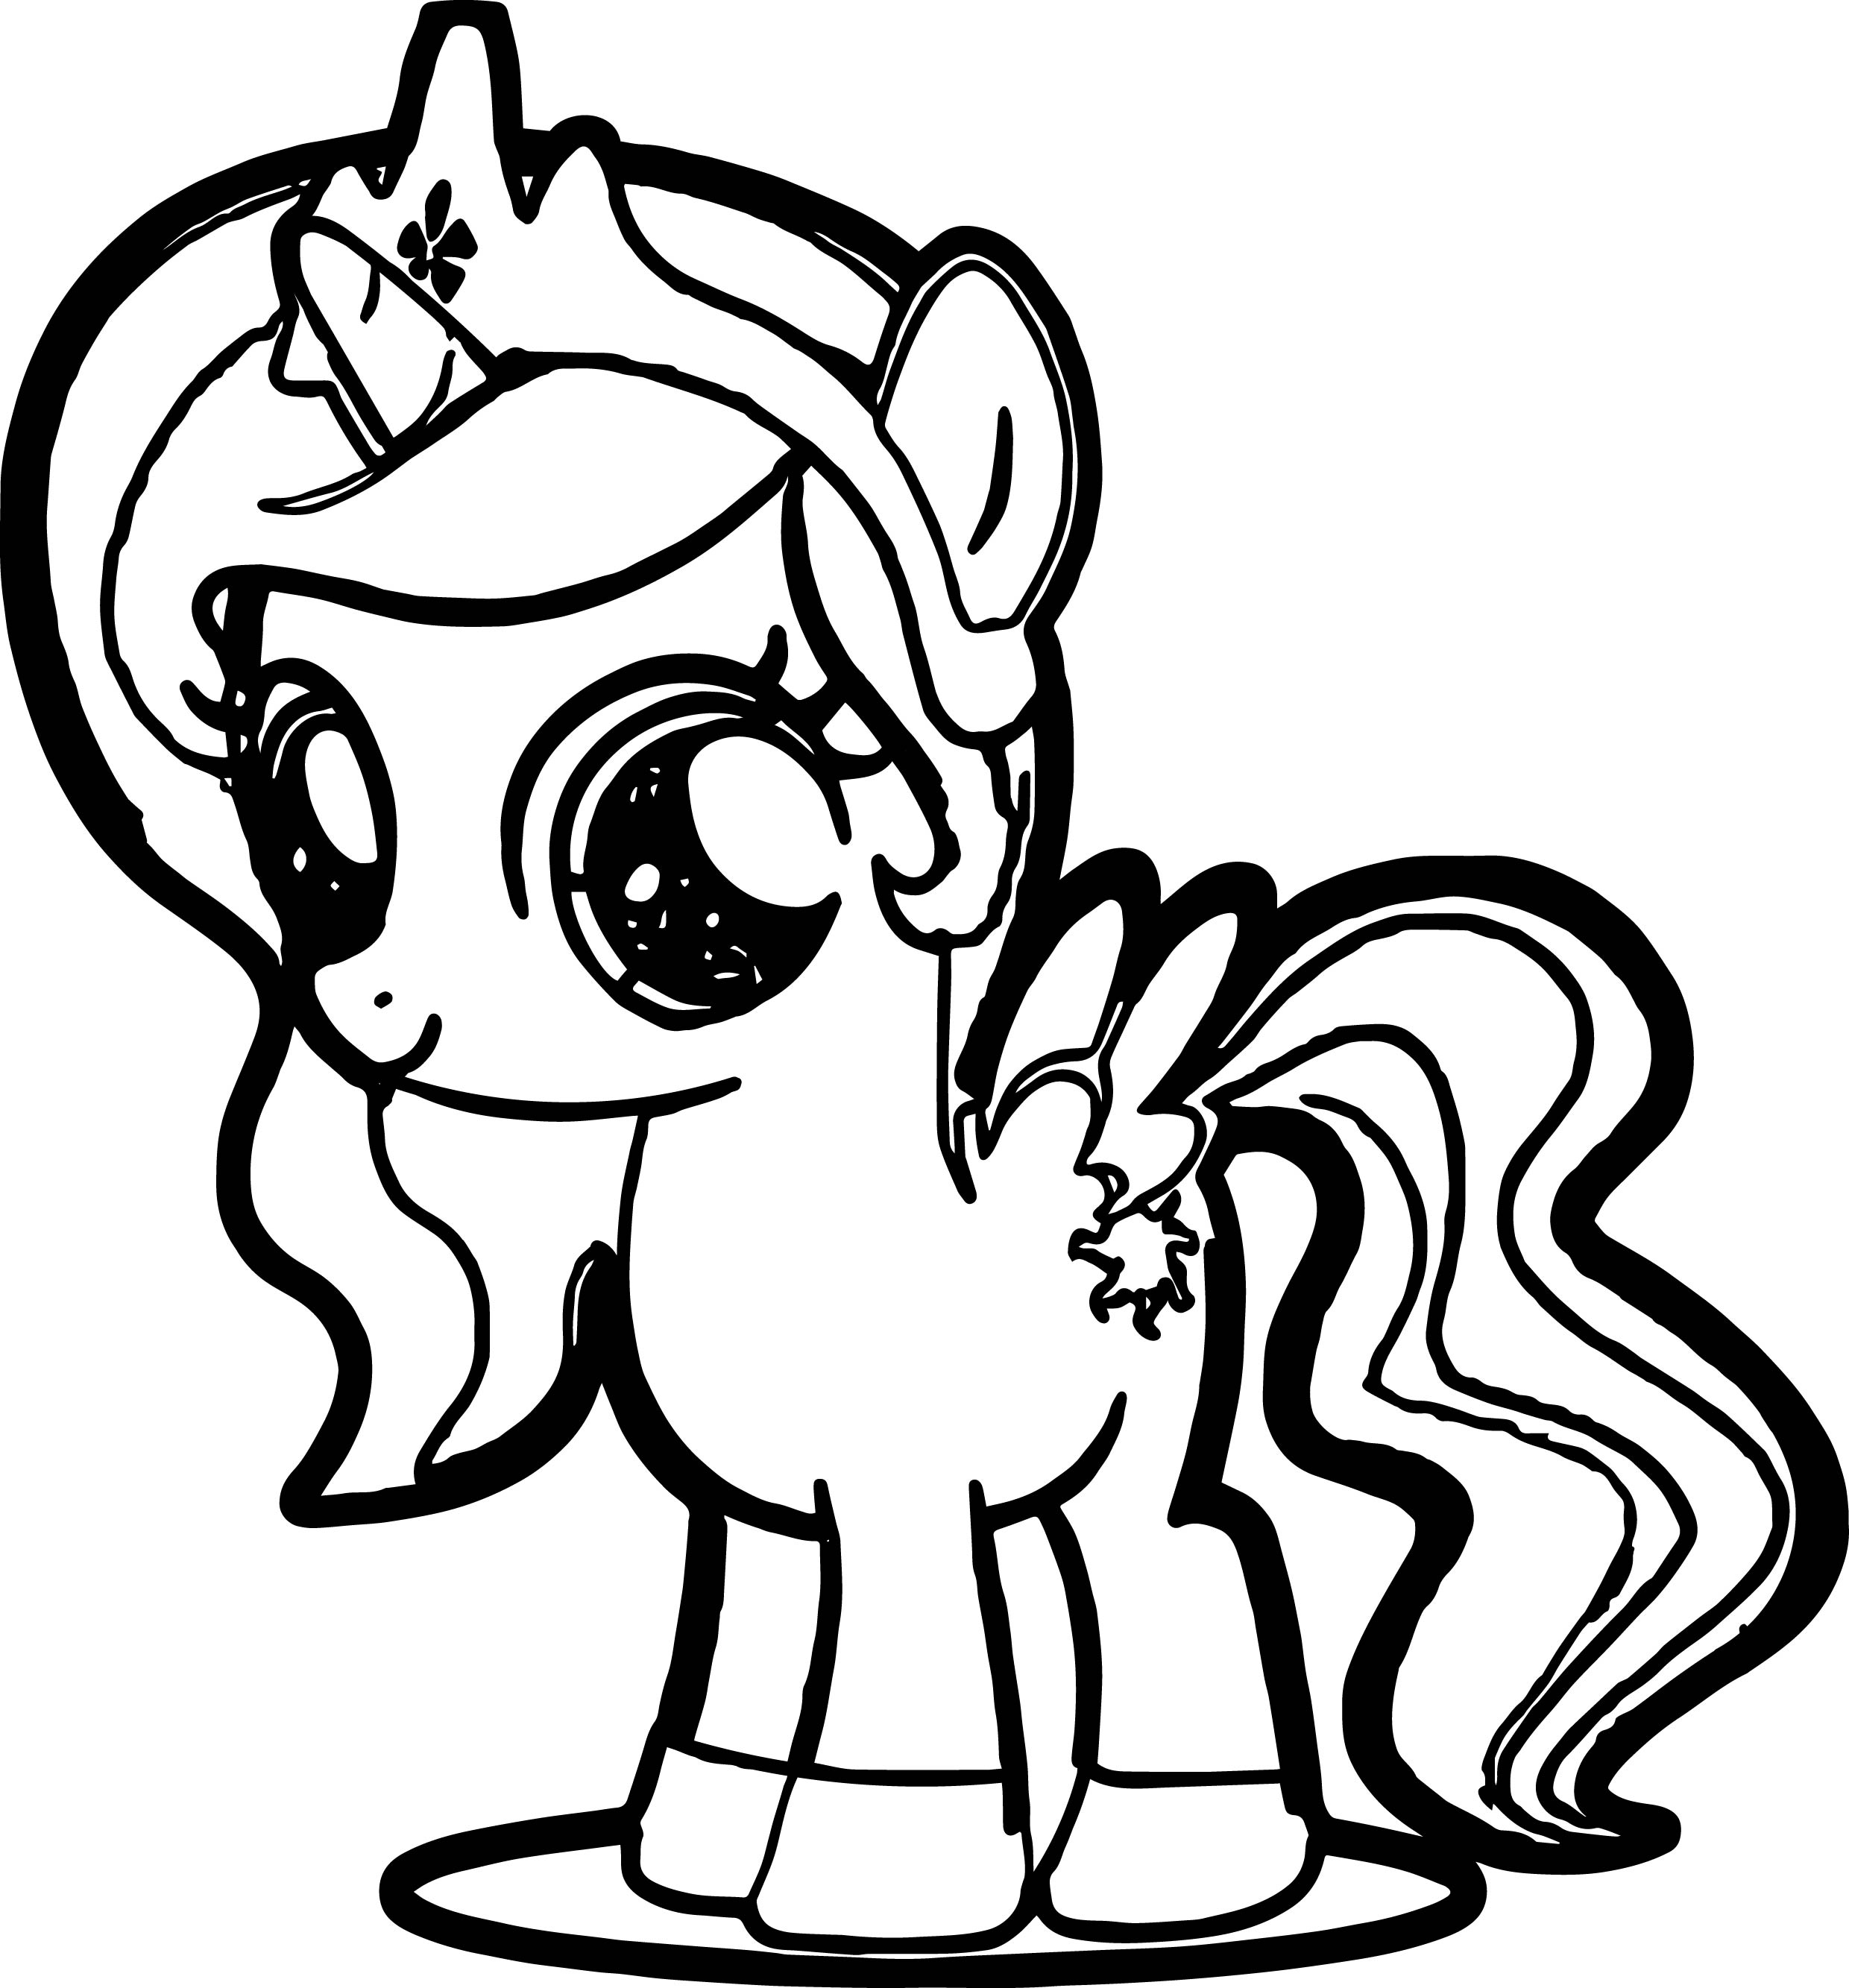 Cute Pony Coloring Page Wecoloringpage